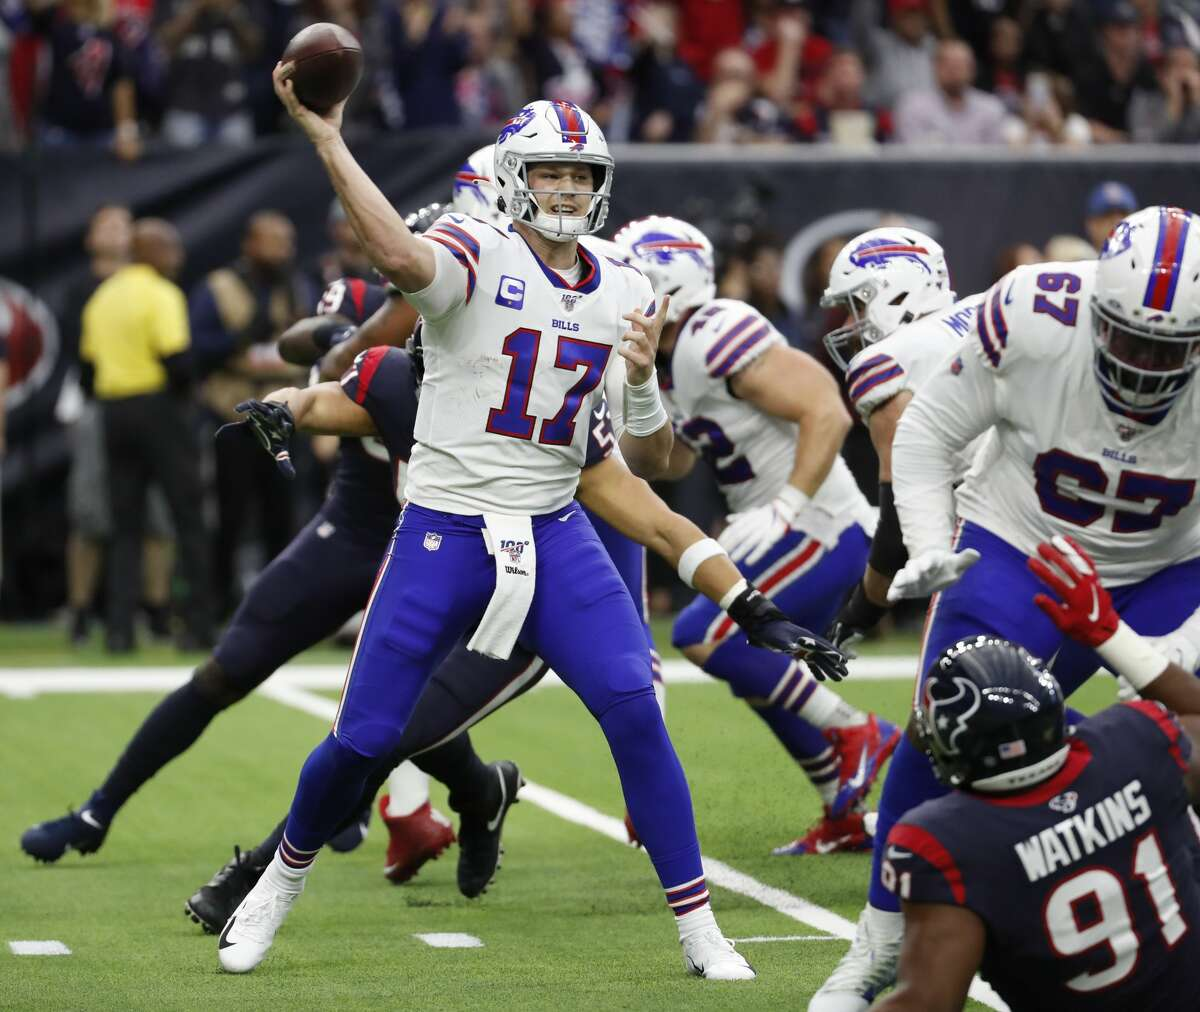 Josh Allen and the Bills will face the Texans for the first time since the teams' 2019 AFC wild-card game at NRG Stadium that Houston won in overtime.